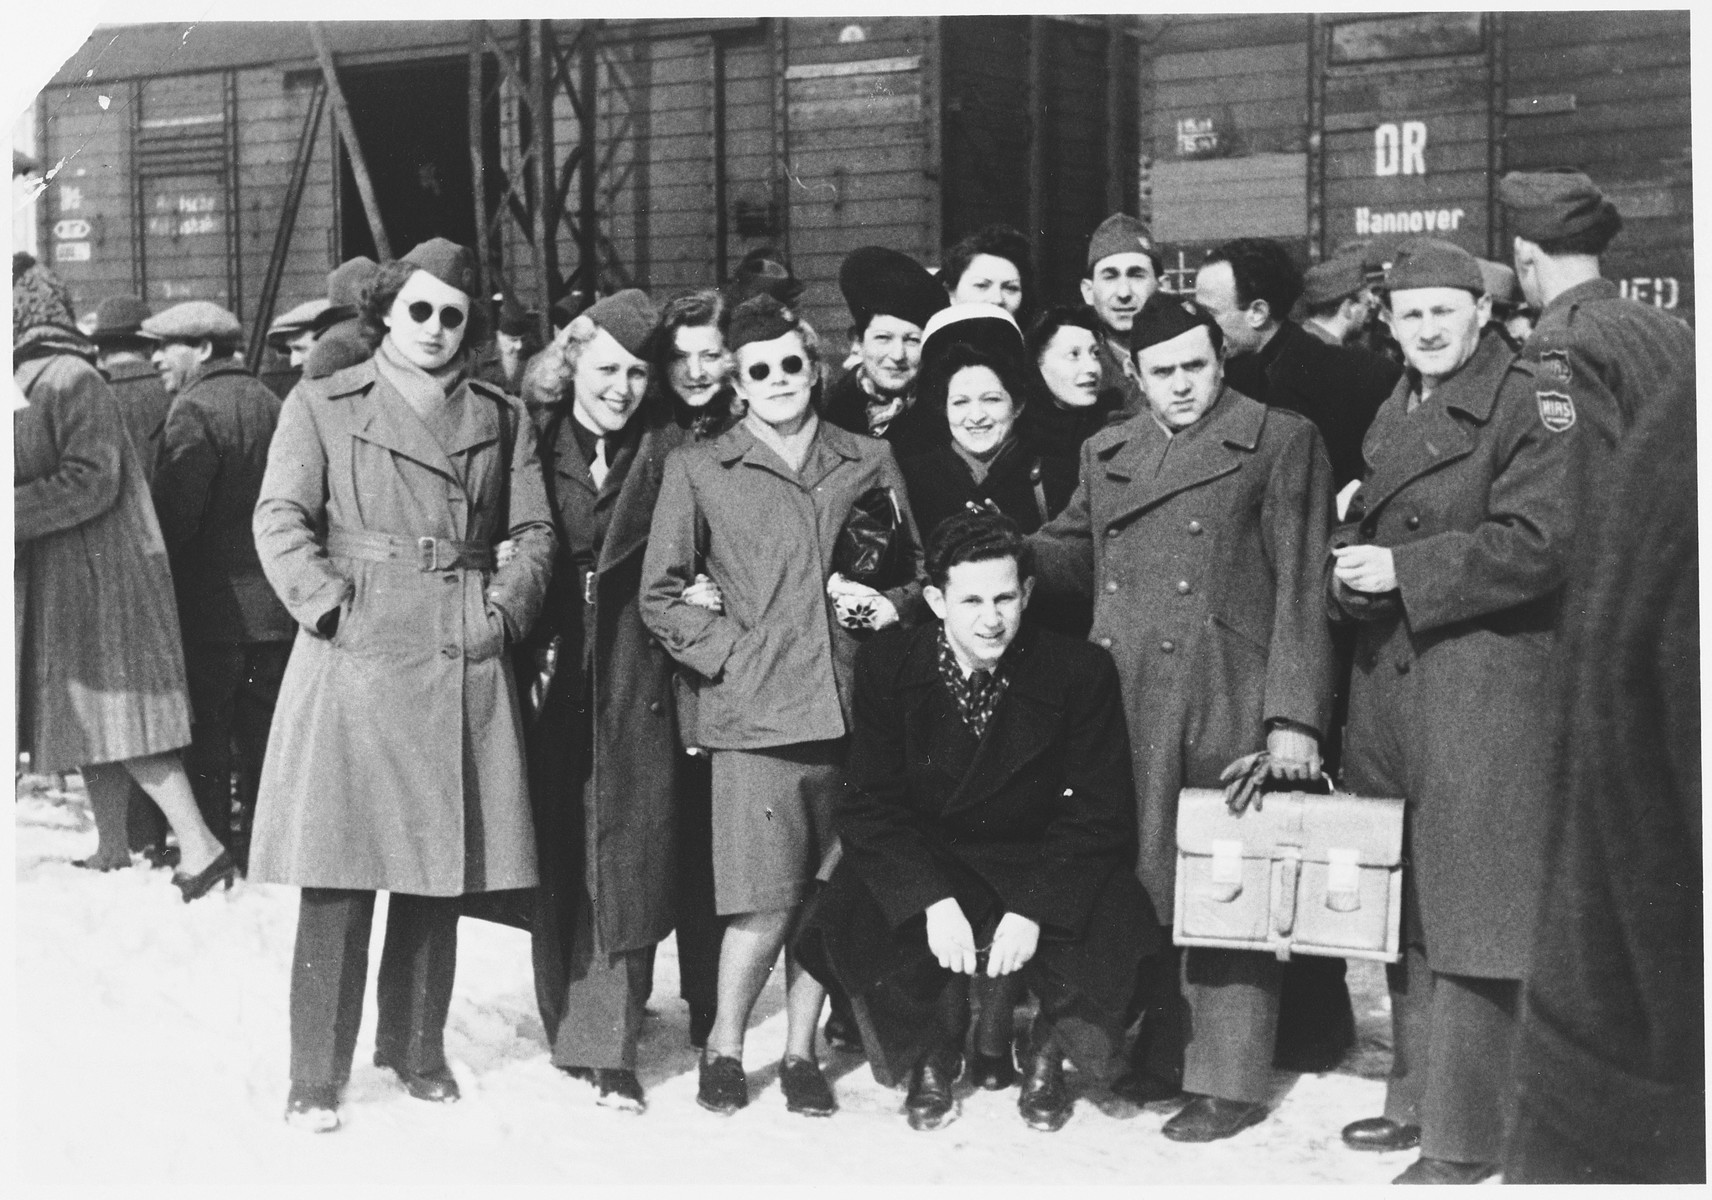 Wilhelm Beigel (kneeling in front) poses with HIAS workers at the Munich train station prior to his departure for the U.S.